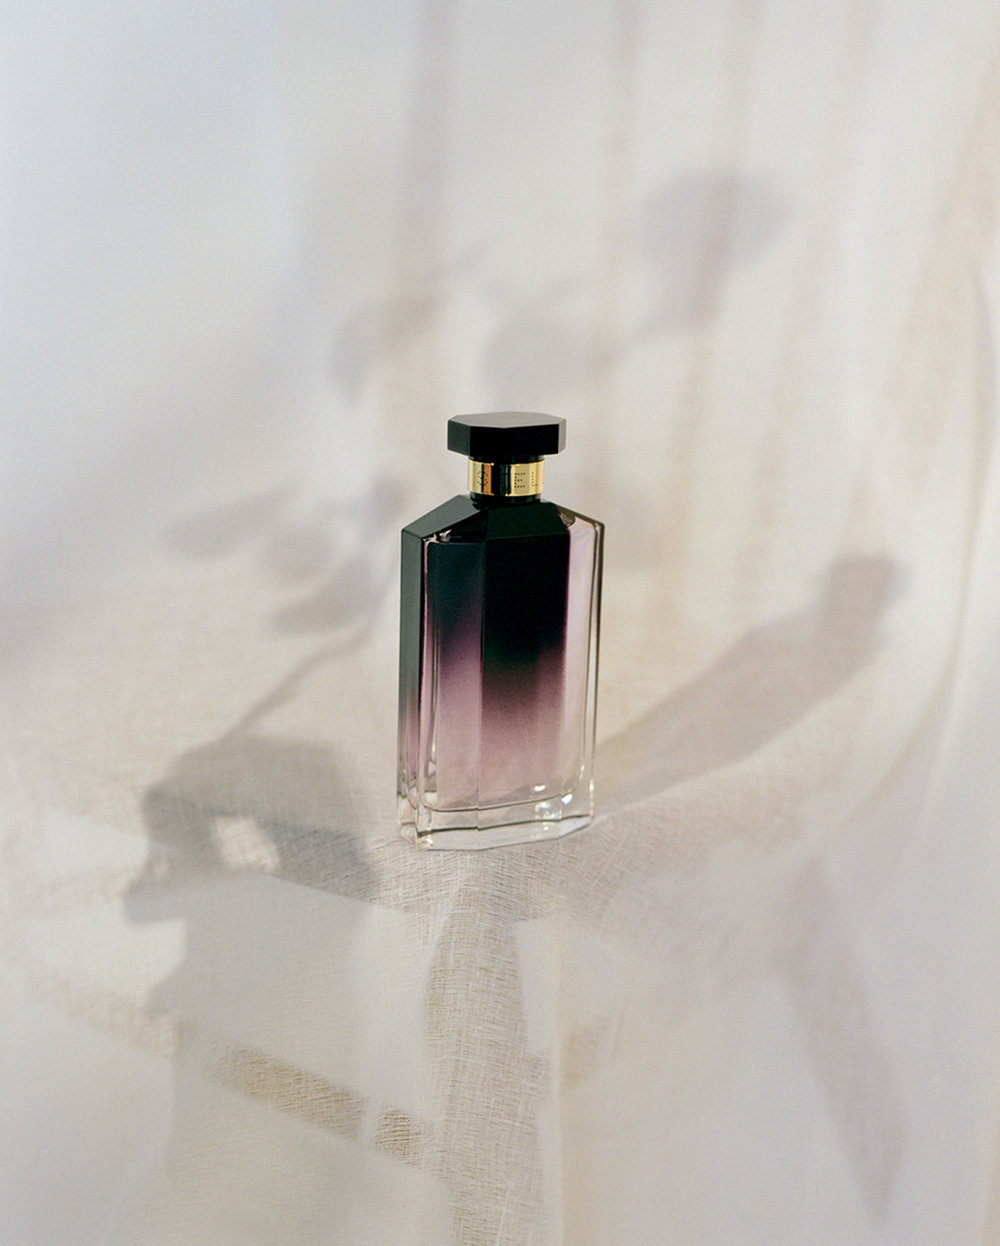 STELLA EAU DE PARFUM  - STELLA MCCARTNEY - LONDON, MARCH 2017